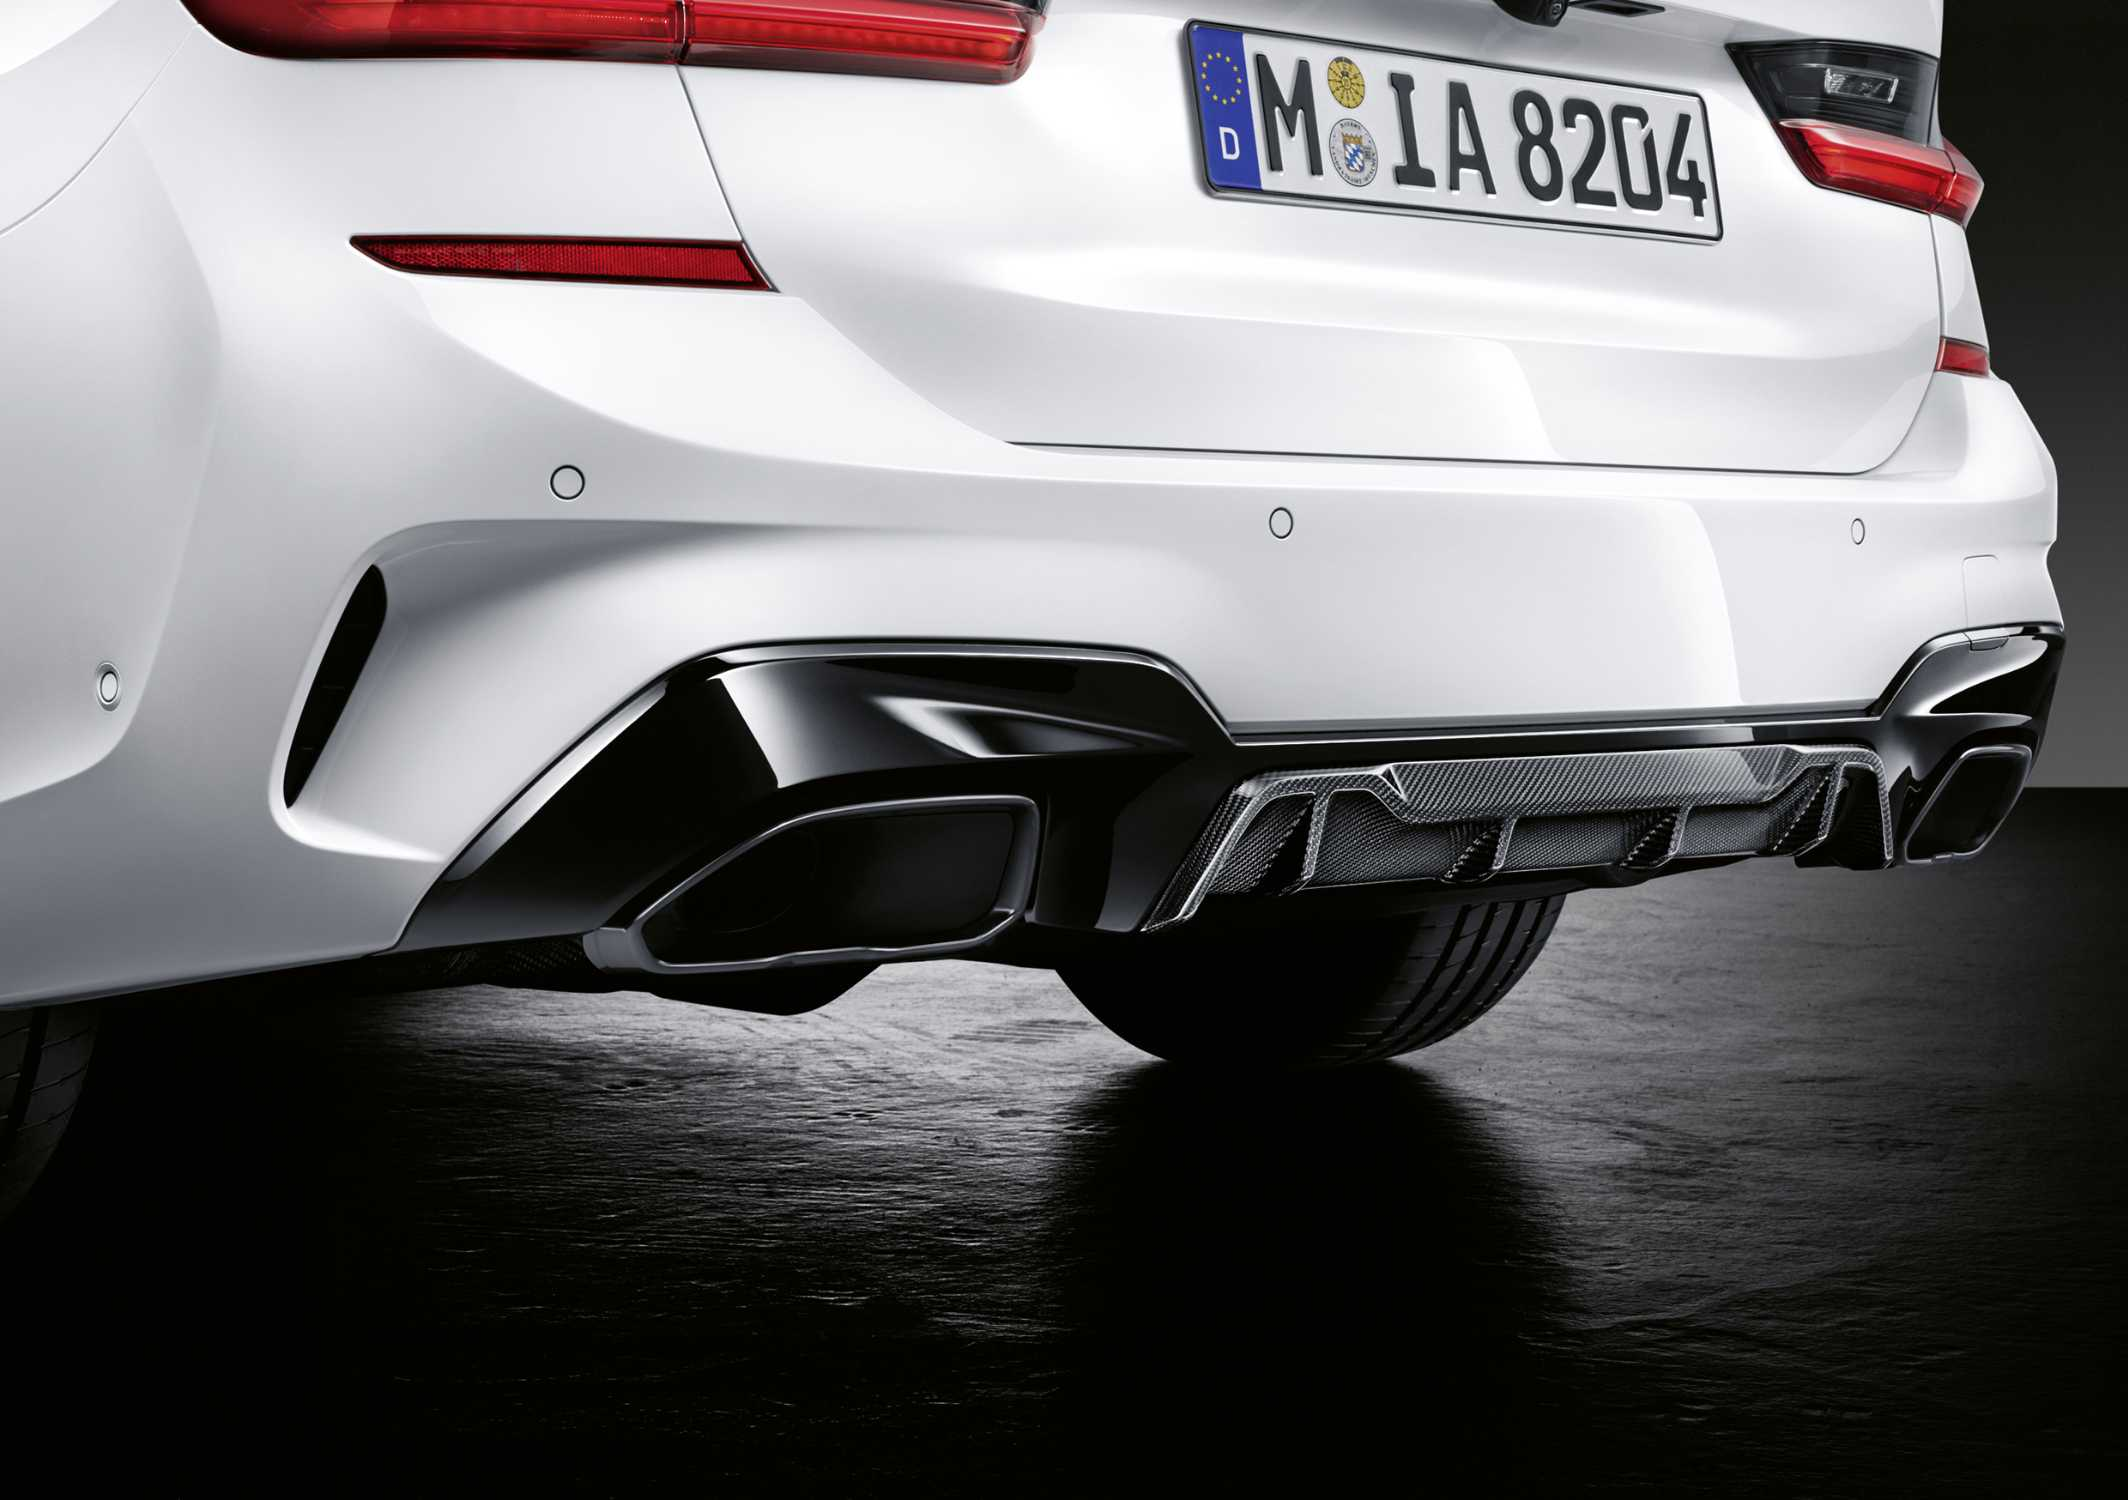 The New Bmw 3 Series Touring With M Performance Parts 06 2019